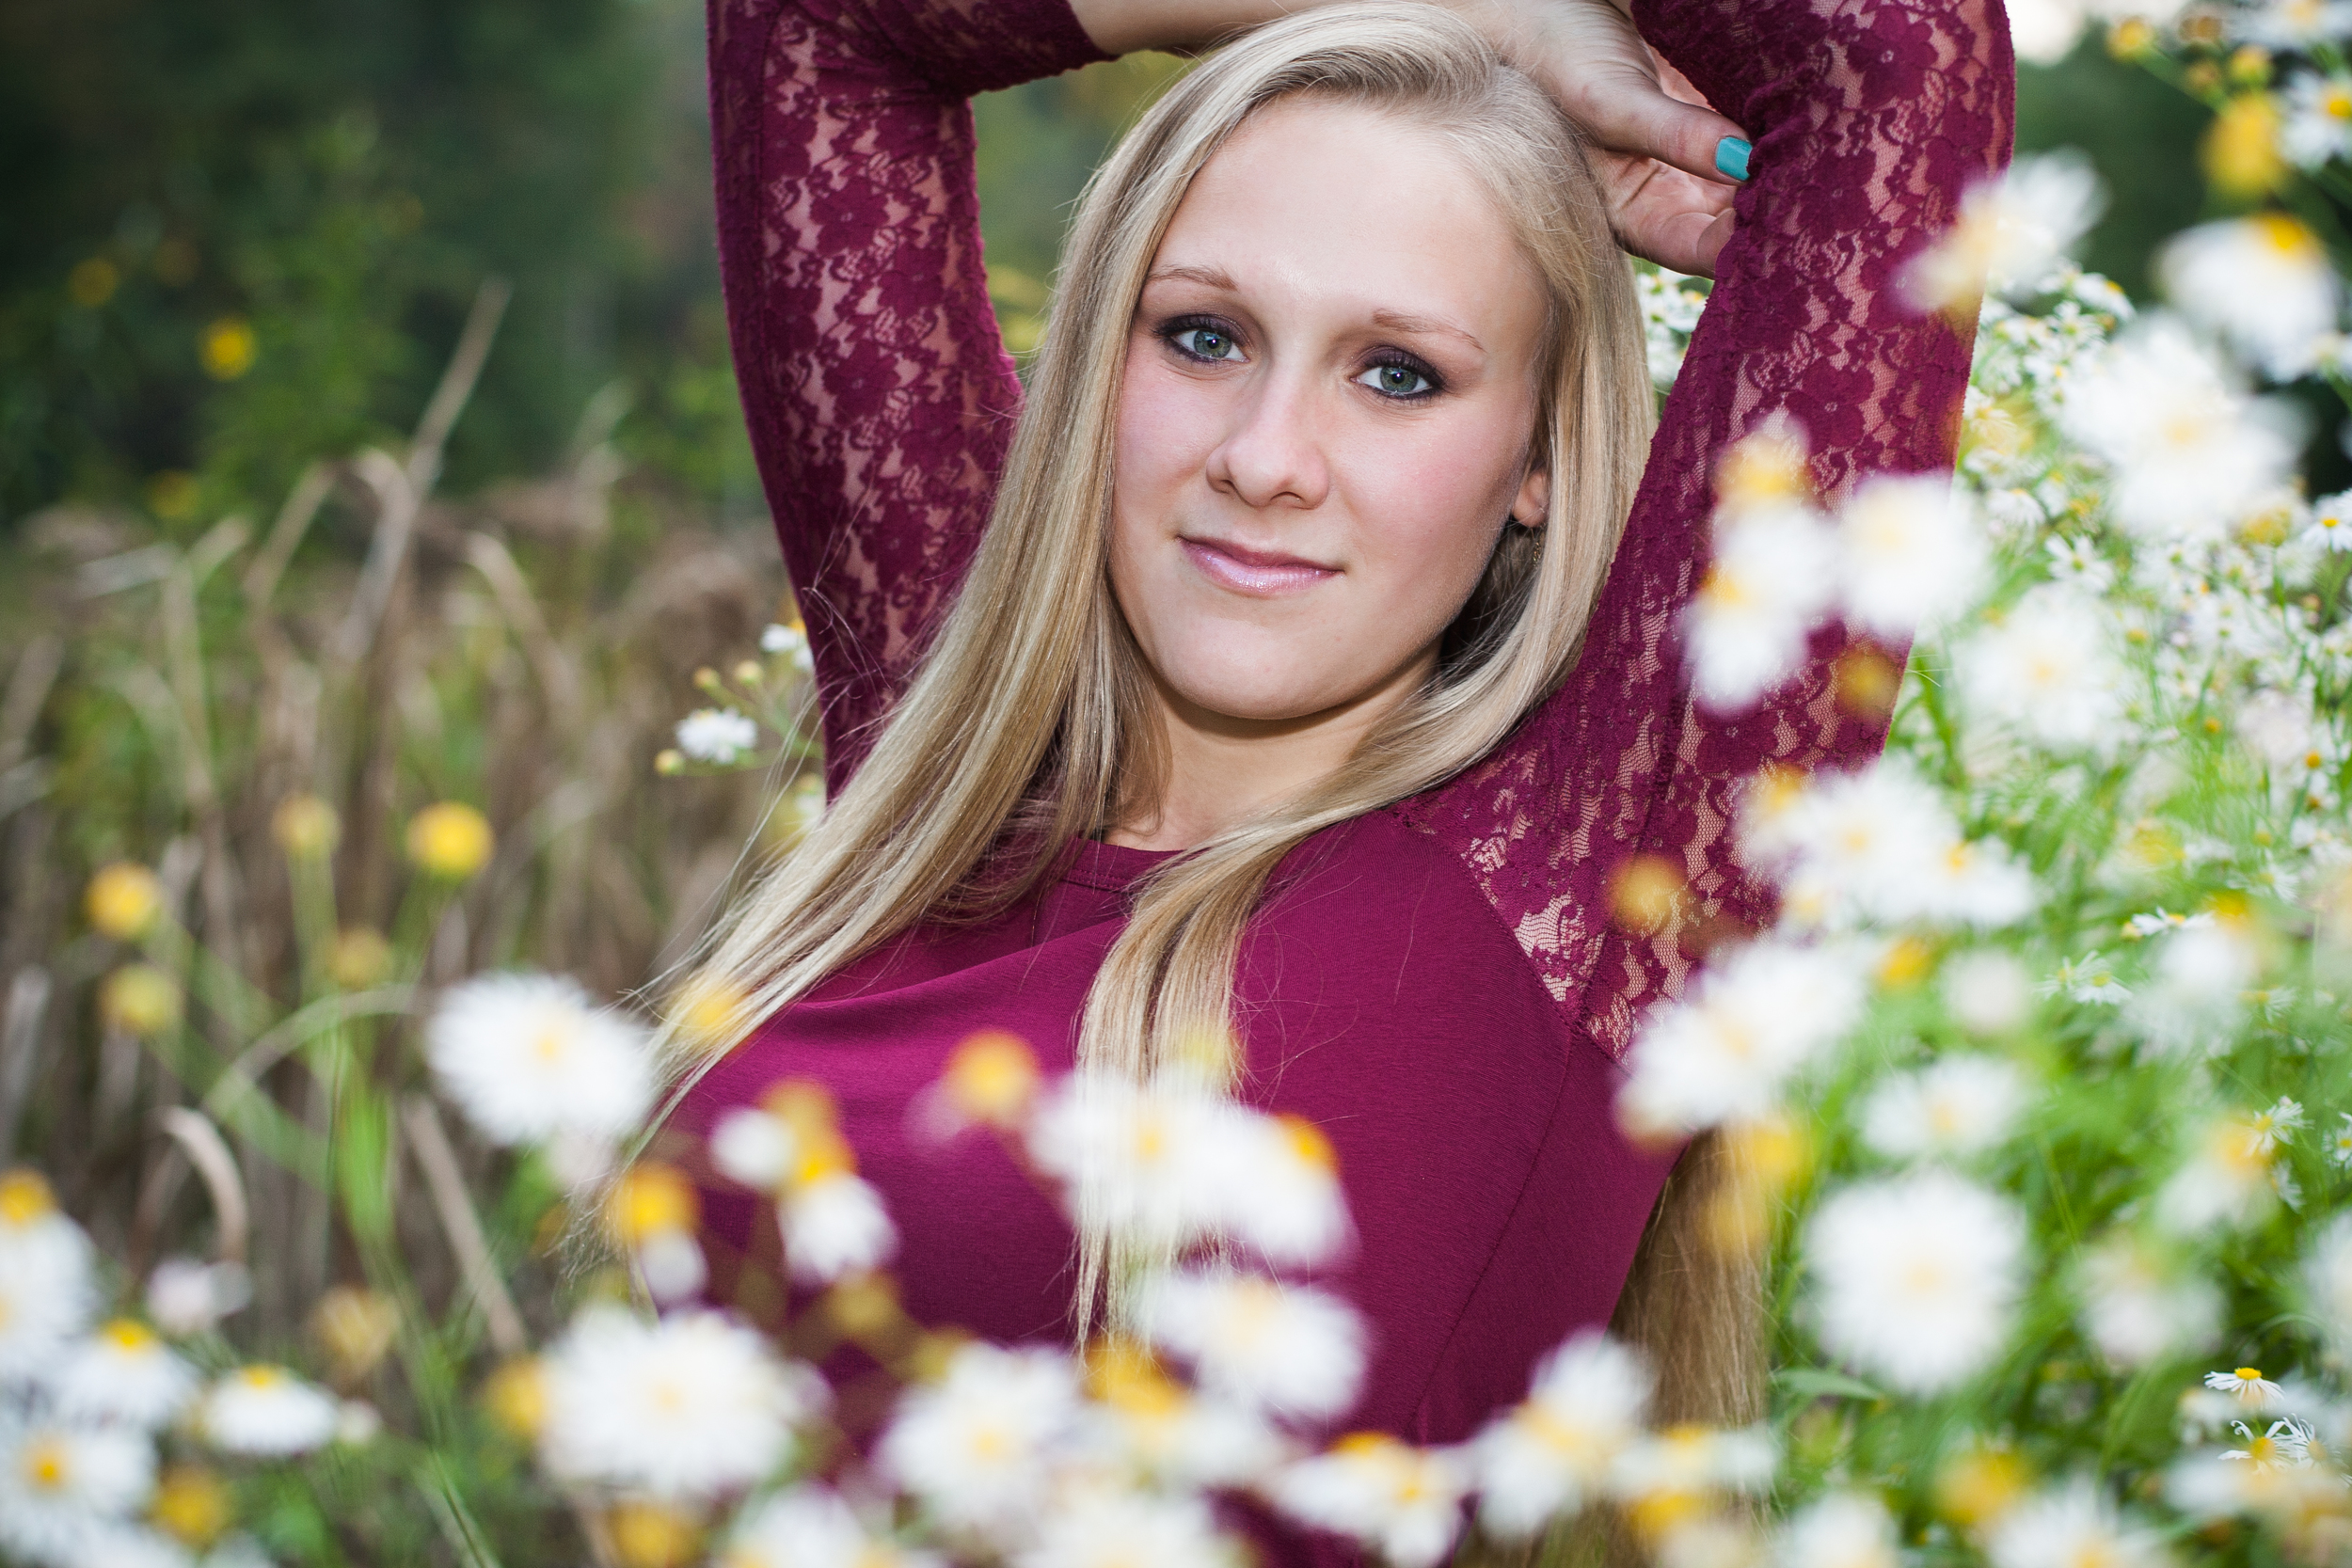 Samantha_Senior_Portraits-107.jpg